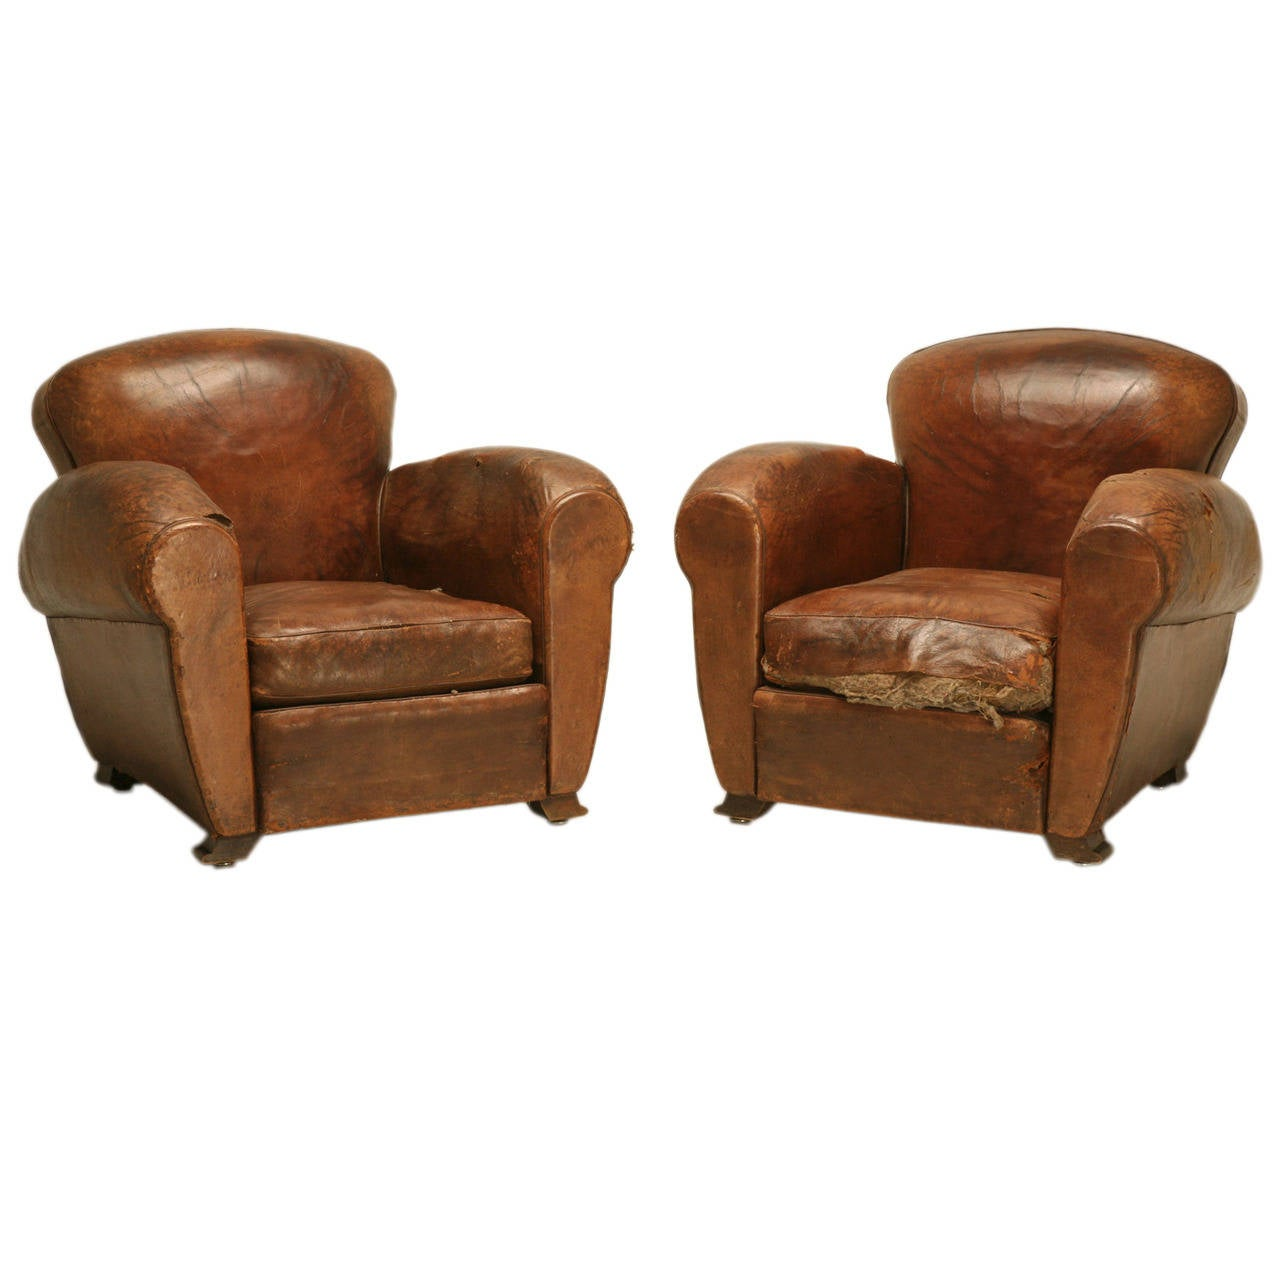 French Art Deco Leather Club Chairs Unrestored At 1stdibs